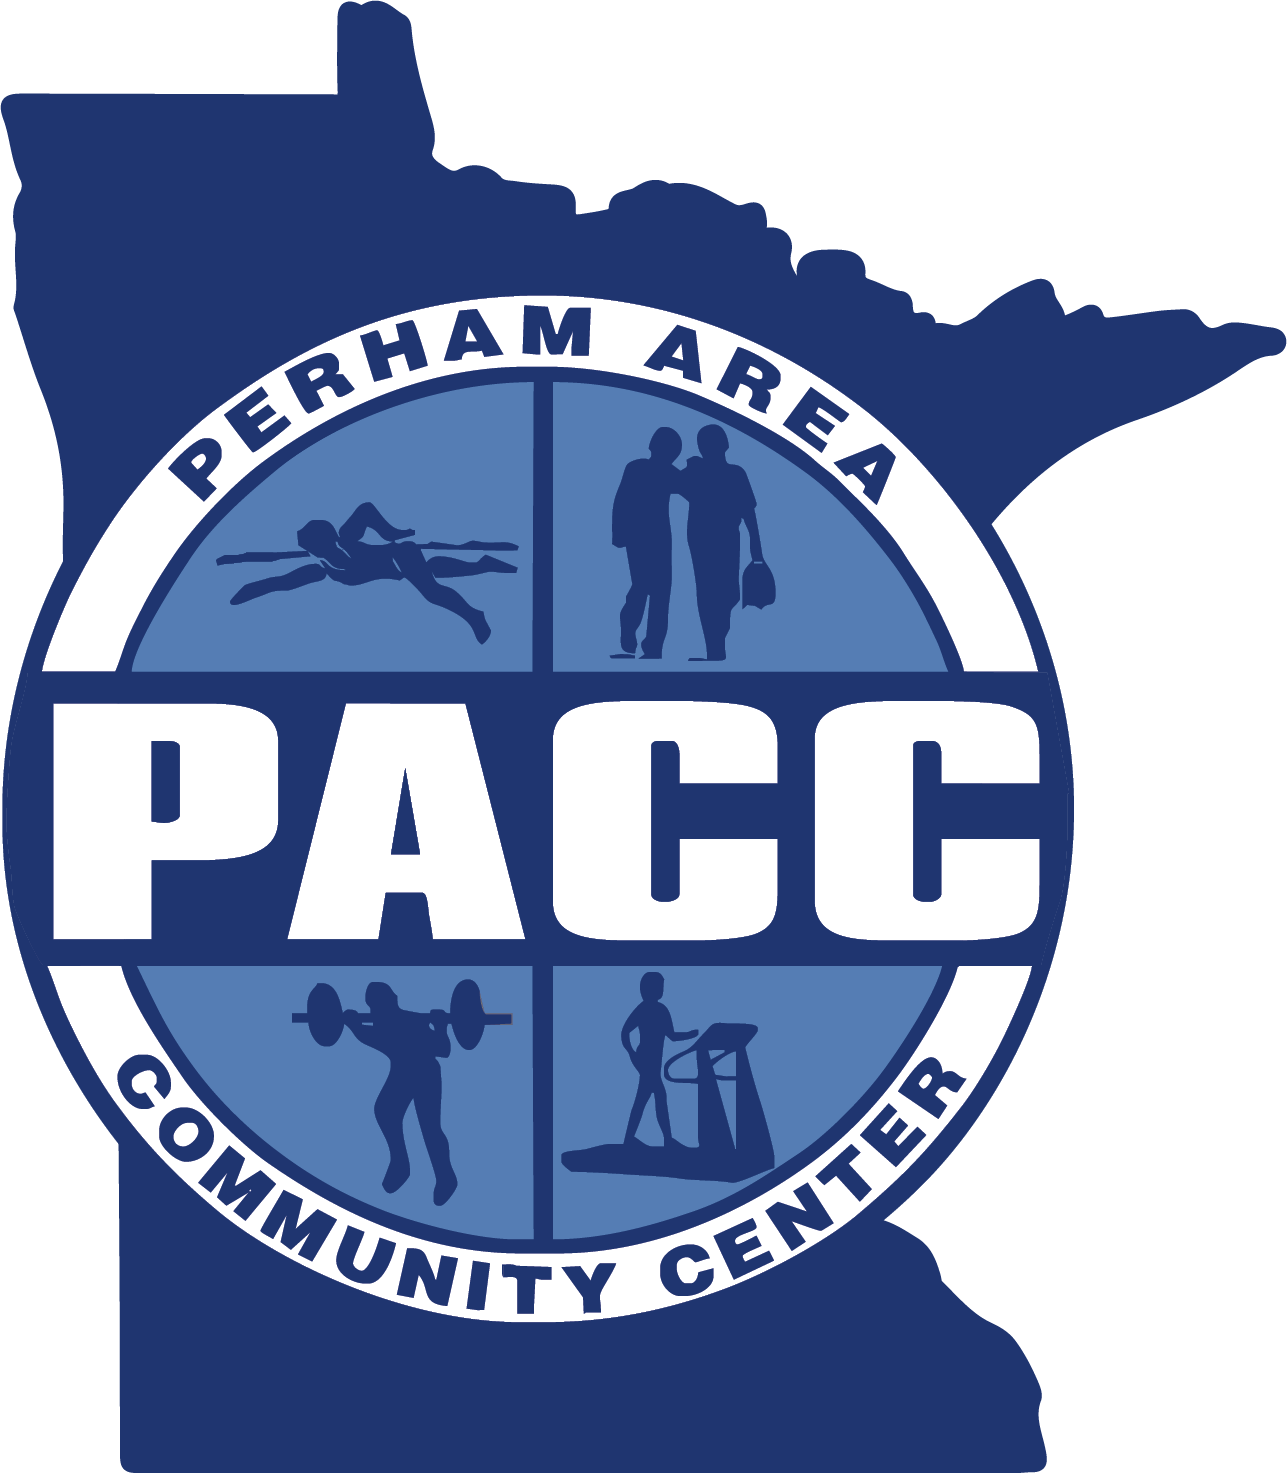 Perham Area Community Center